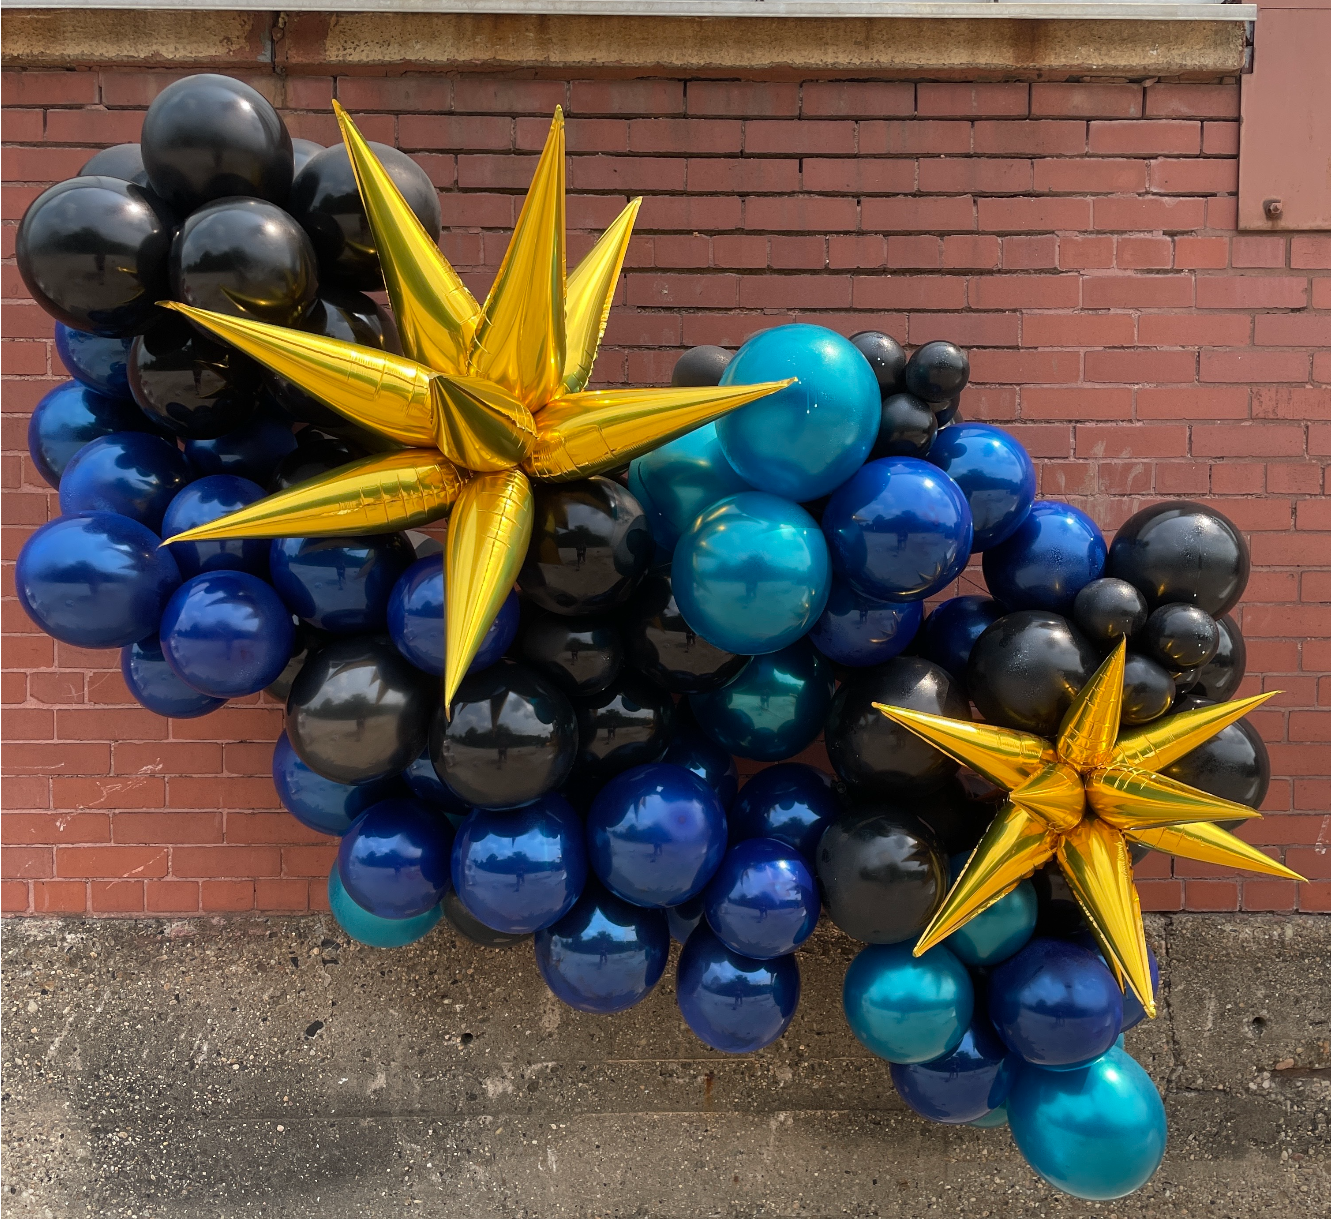 2021 Popular Balloon Trends and Tips to Make Them Happen